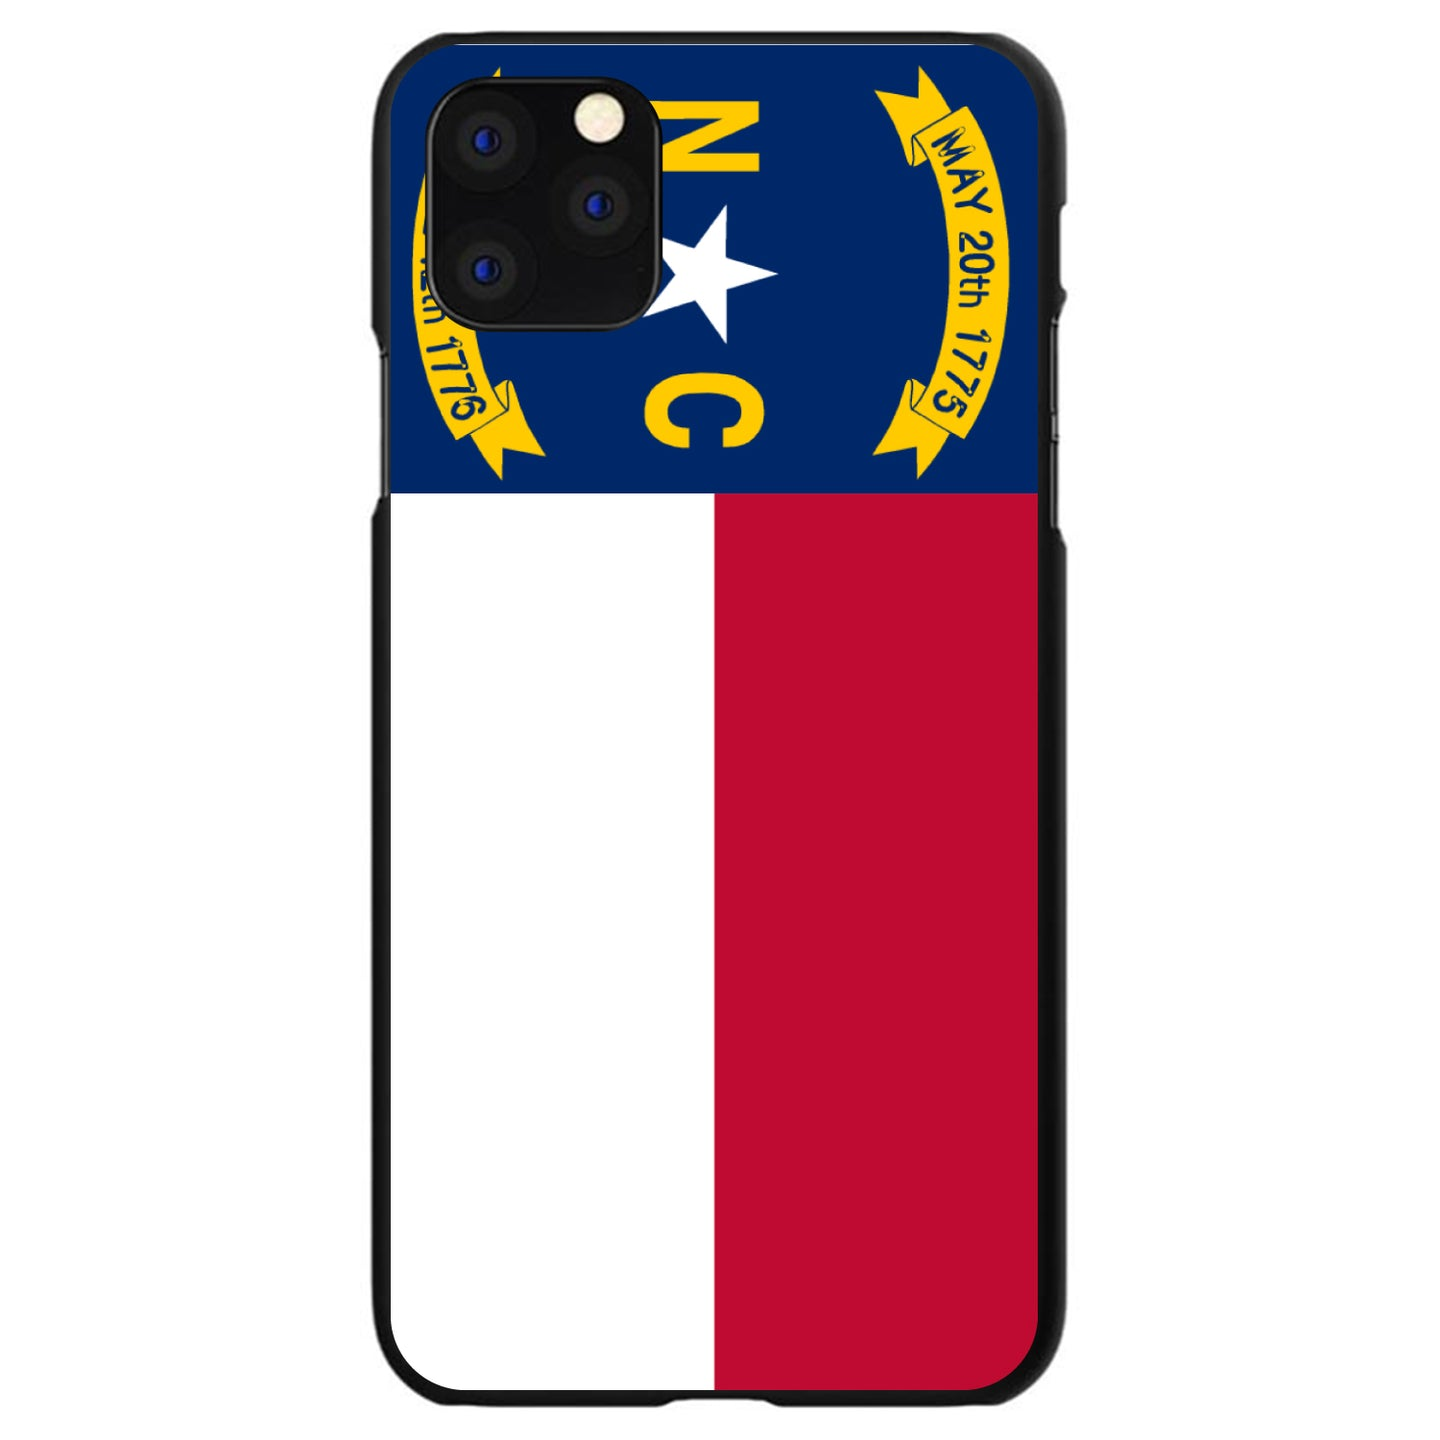 DistinctInk® Hard Plastic Snap-On Case for Apple iPhone - North Carolina State Flag